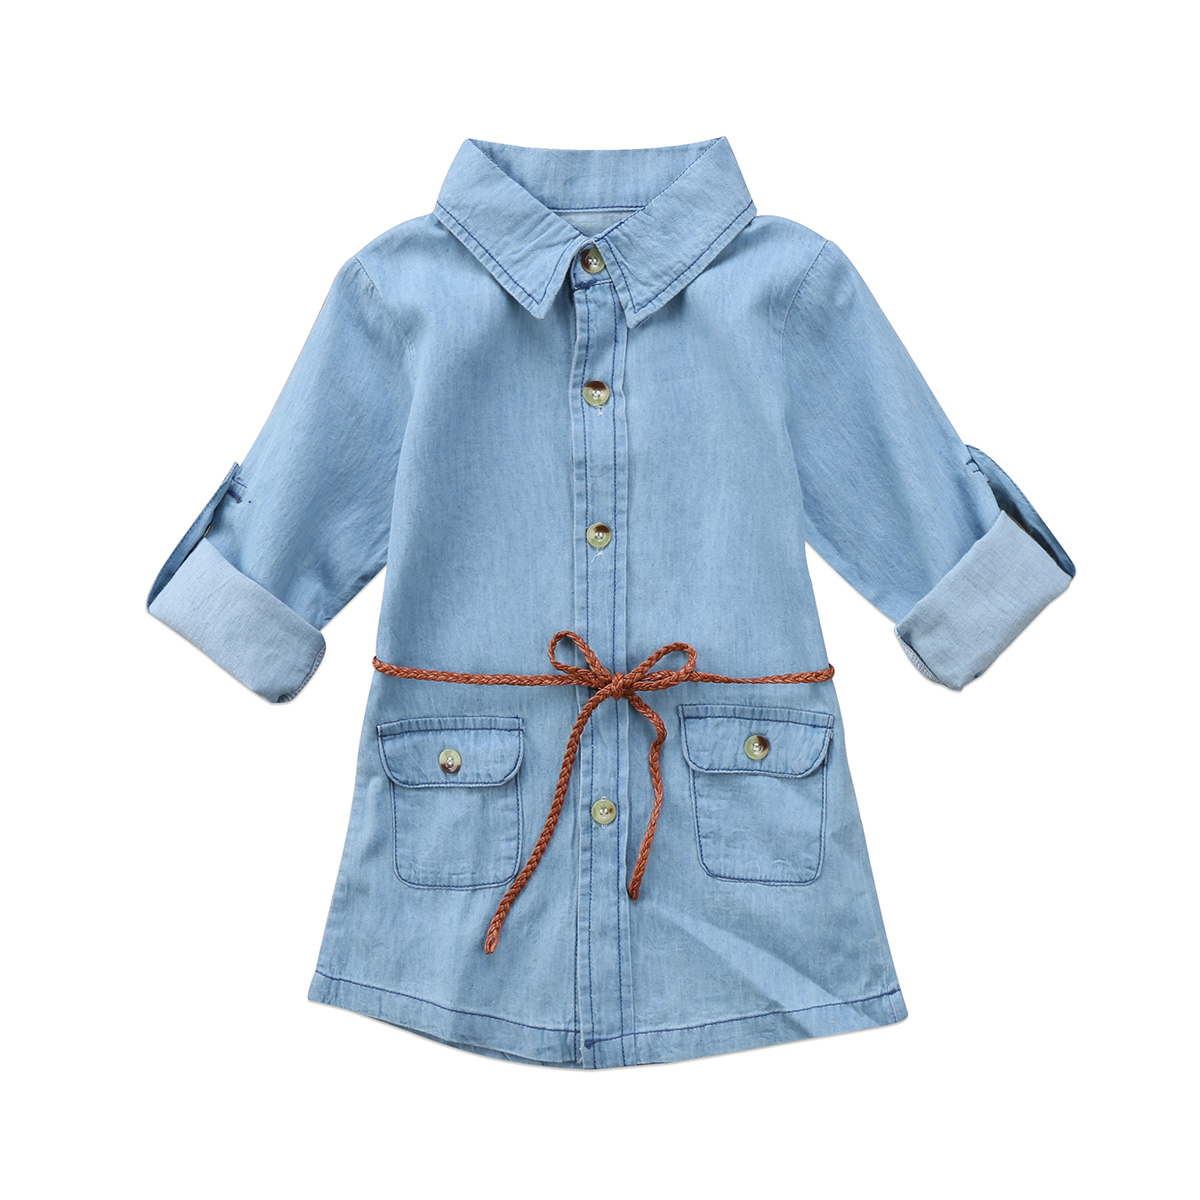 Baby Kids Girl Denim Long Shirt Fashion Denim Color Drawstring waist Shirt extreme destroyed raw hem drawstring waist crop jeans